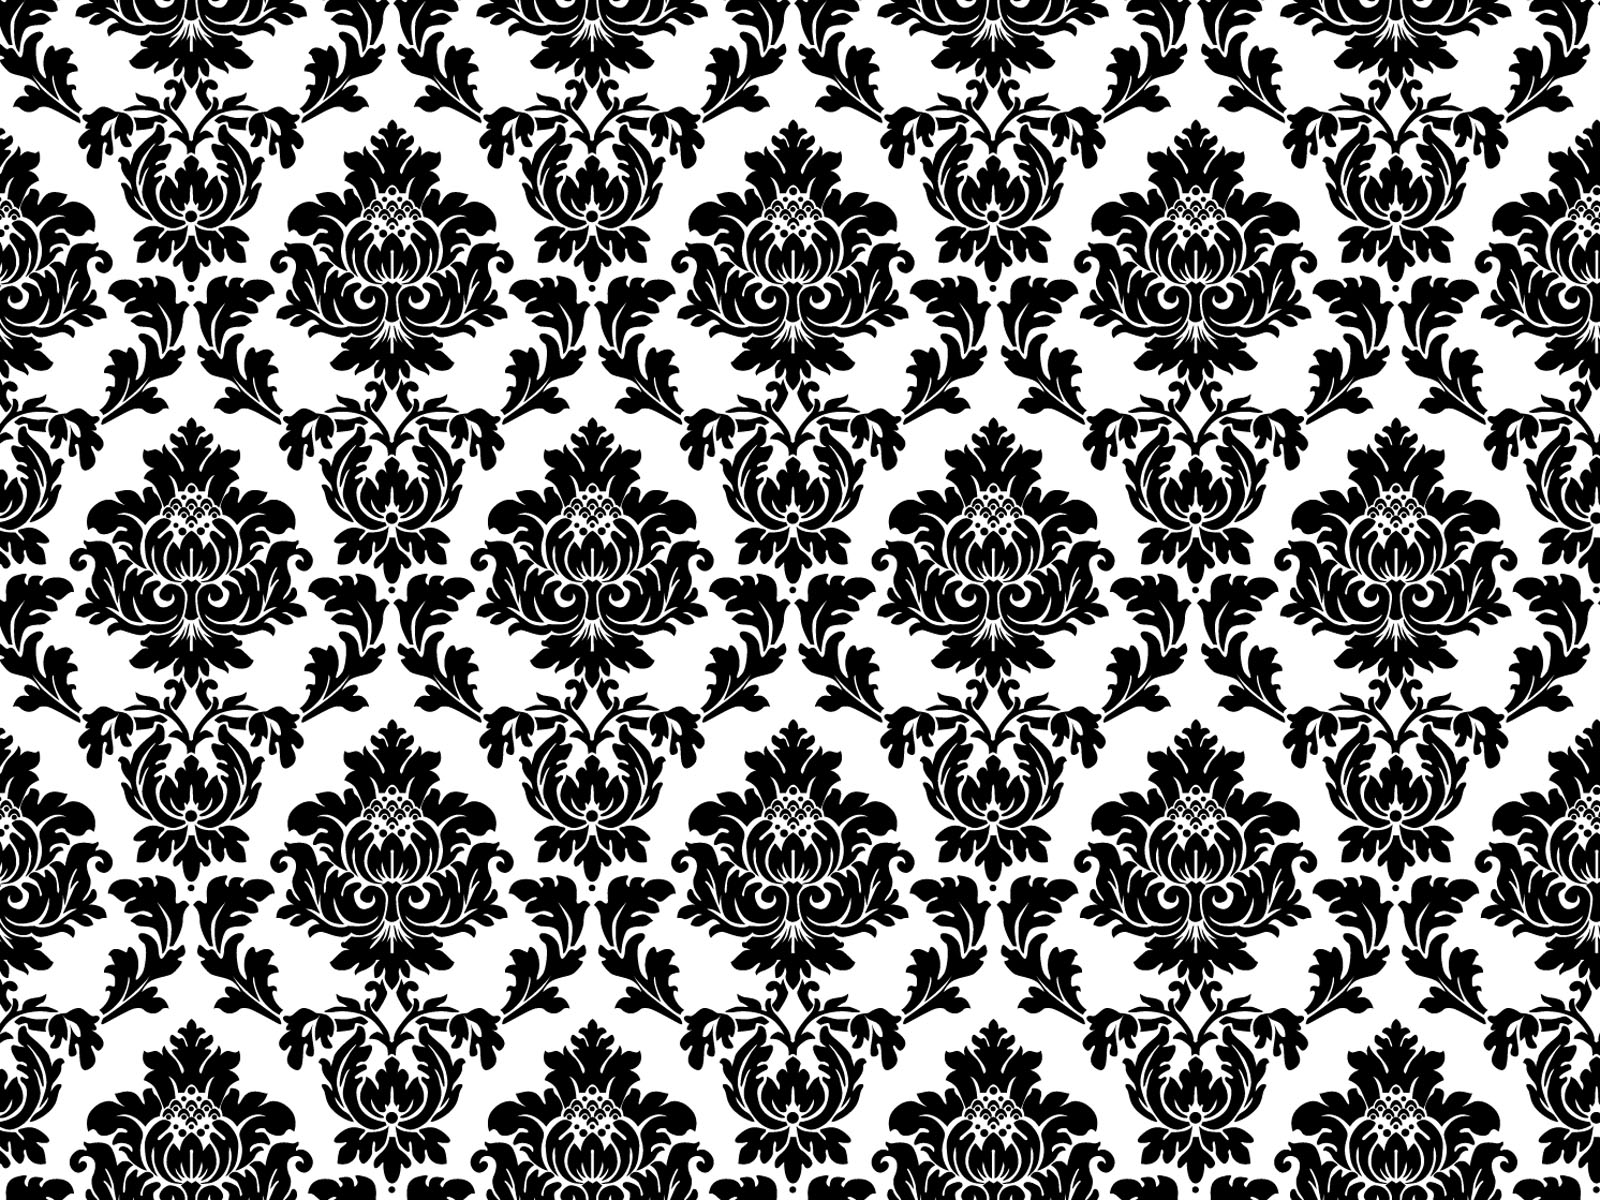 Pattern Black and White Cool Wallpaper Amazing Background 1600x1200